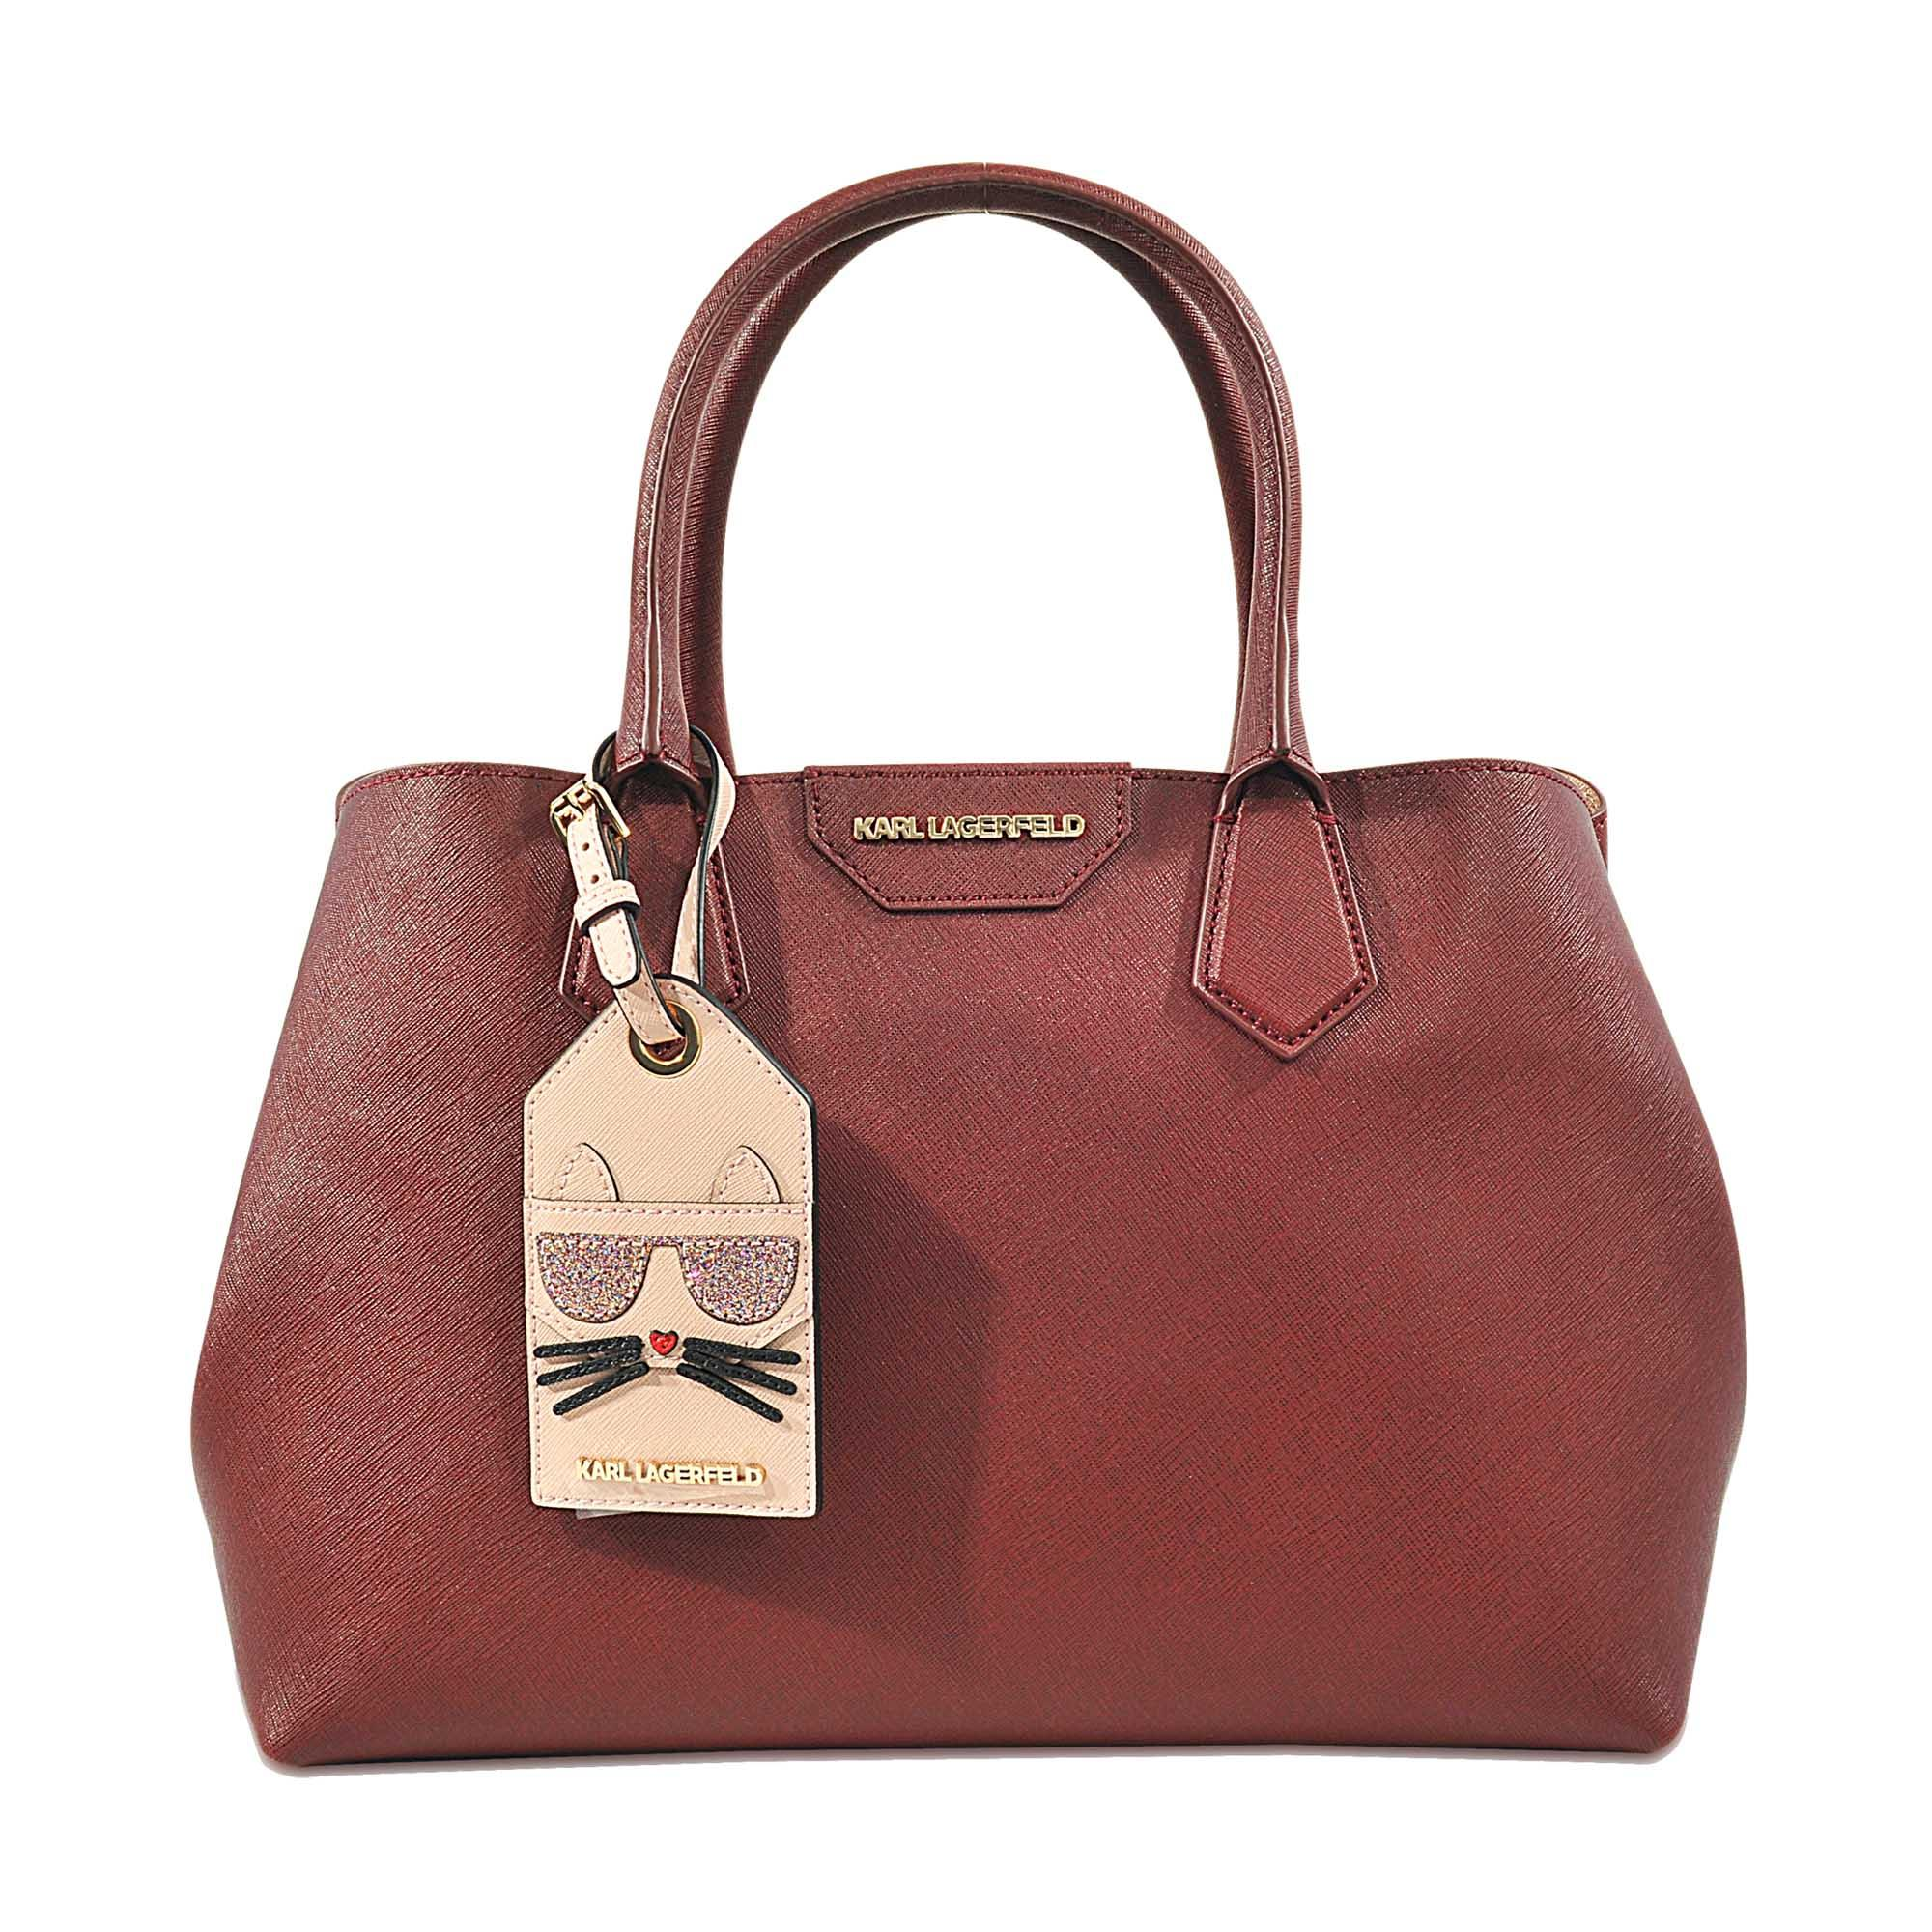 Lyst - Karl Lagerfeld K Lady Shopper Bag in Red dafc245c432b9